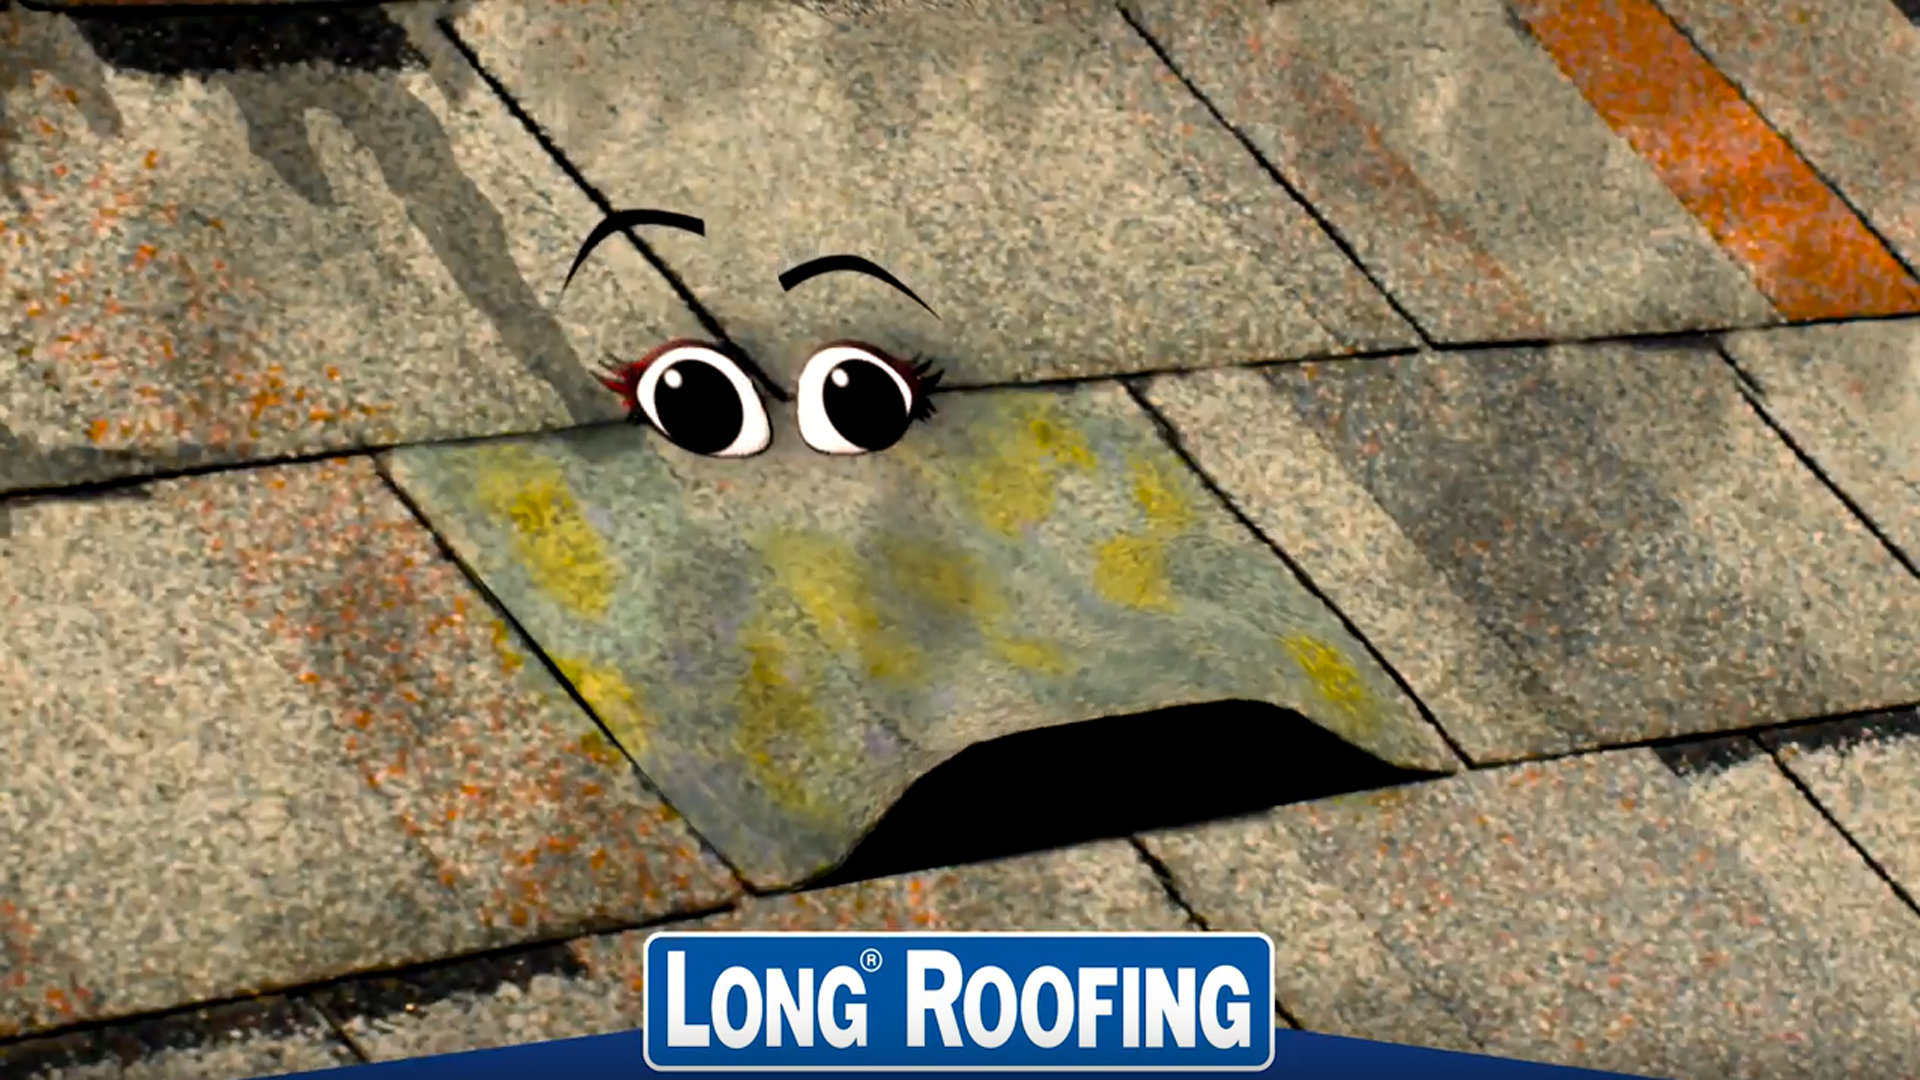 Long Roofing Commercial Image